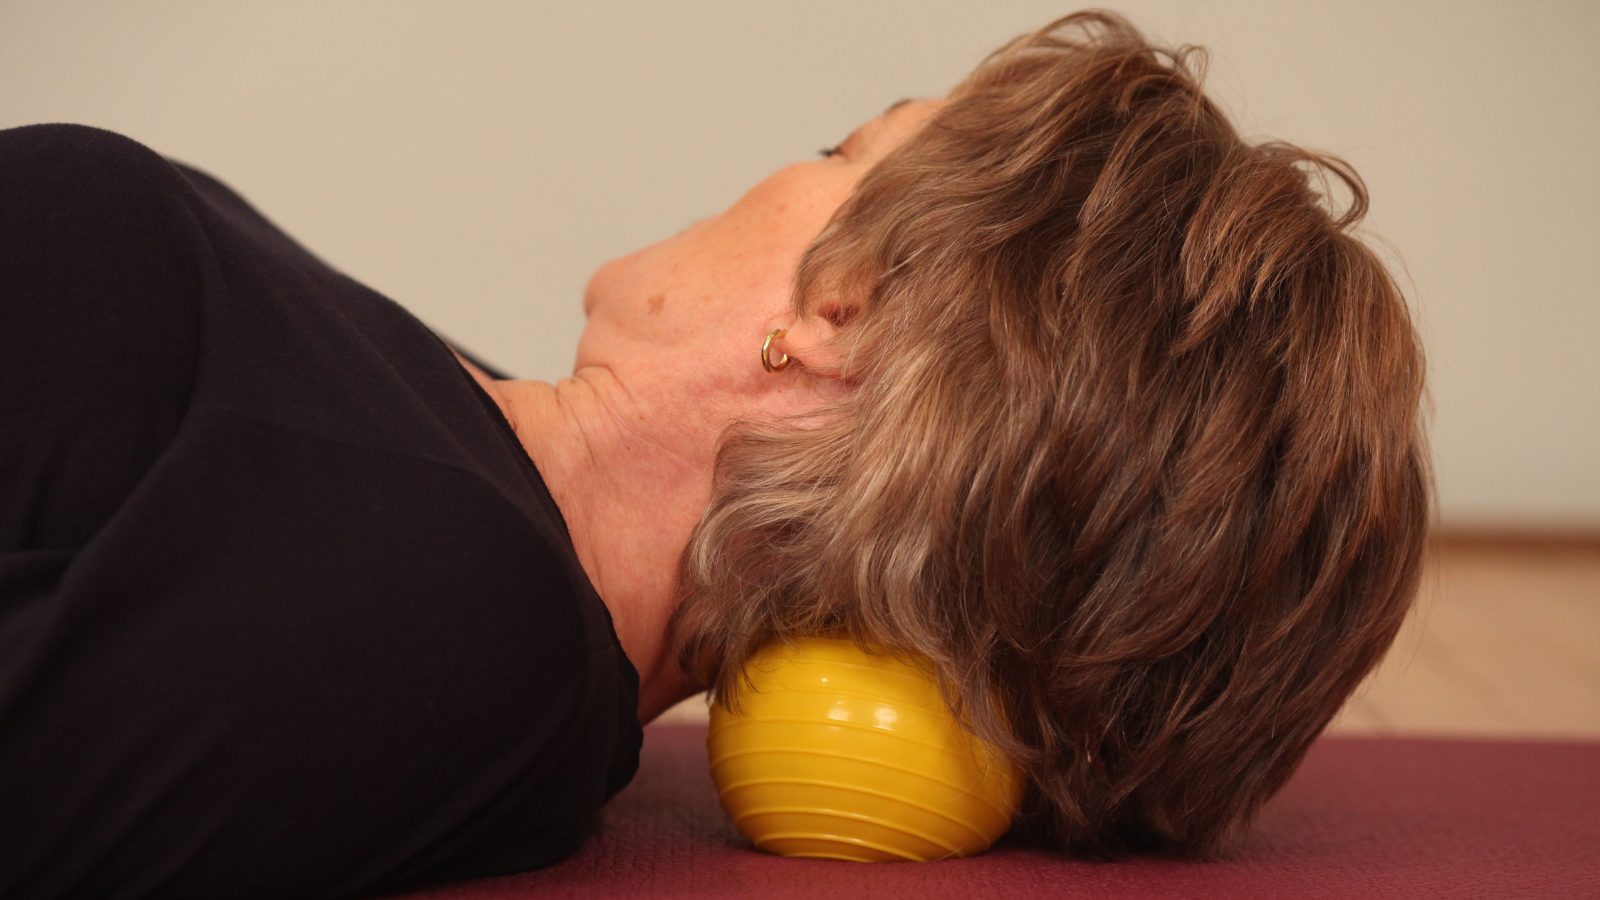 How to use a rubber exercise ball right under your neck to release pain and neck tension